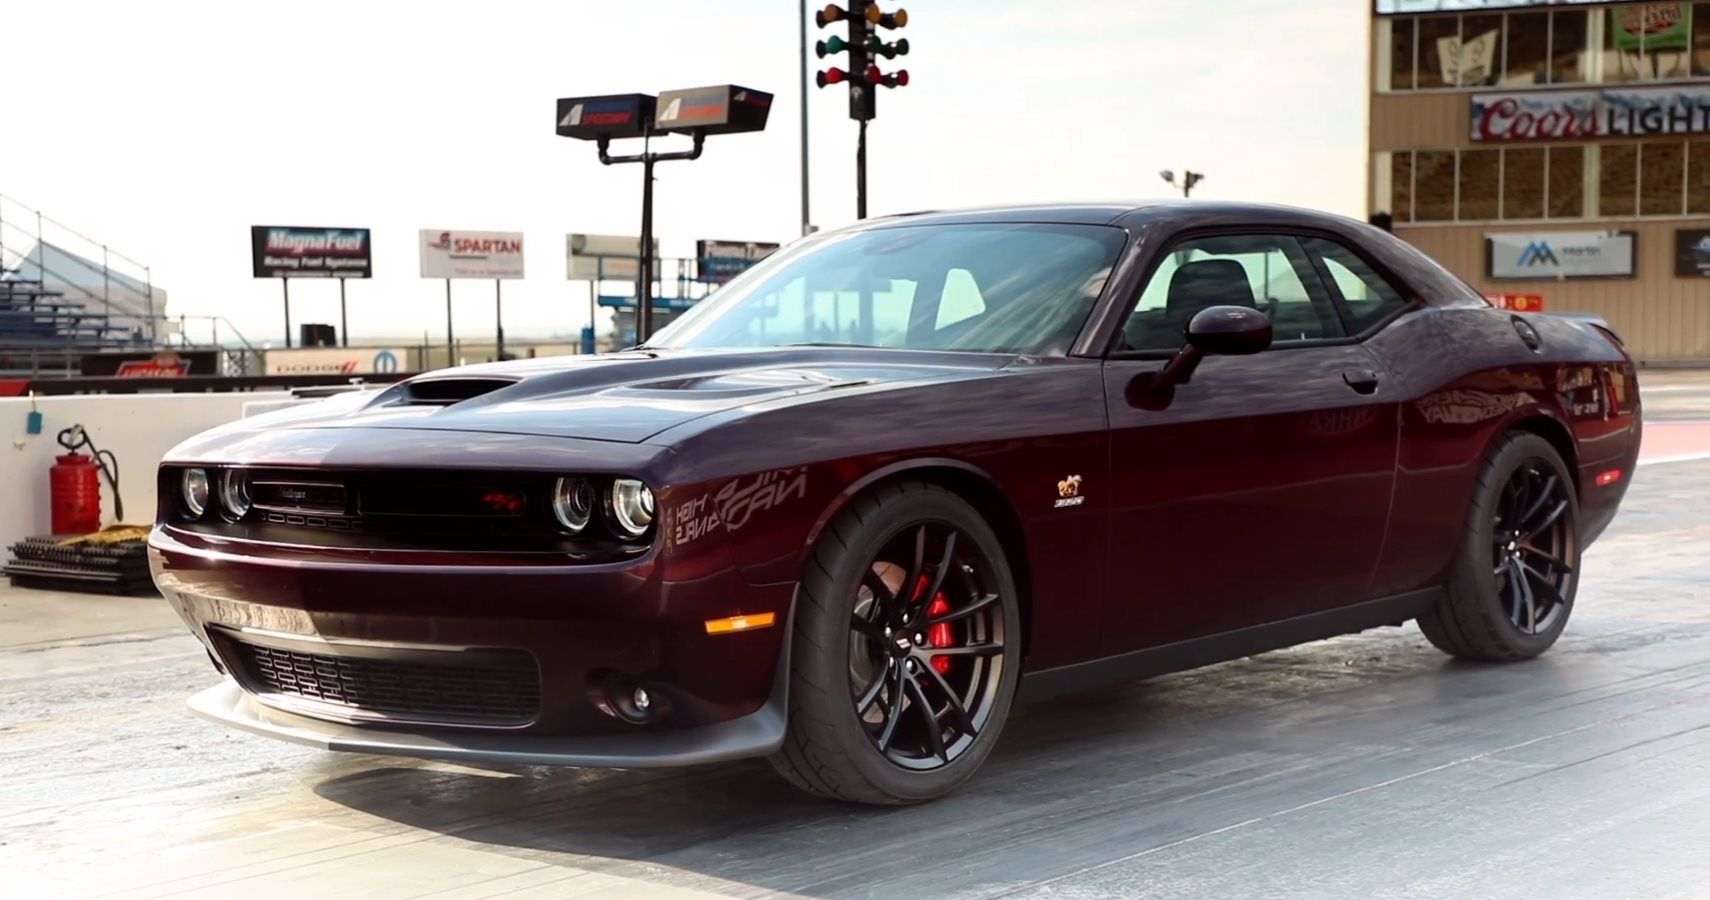 Dodge Challenger R/T Scat Pack 1320 Trim Is Inspired By Demon